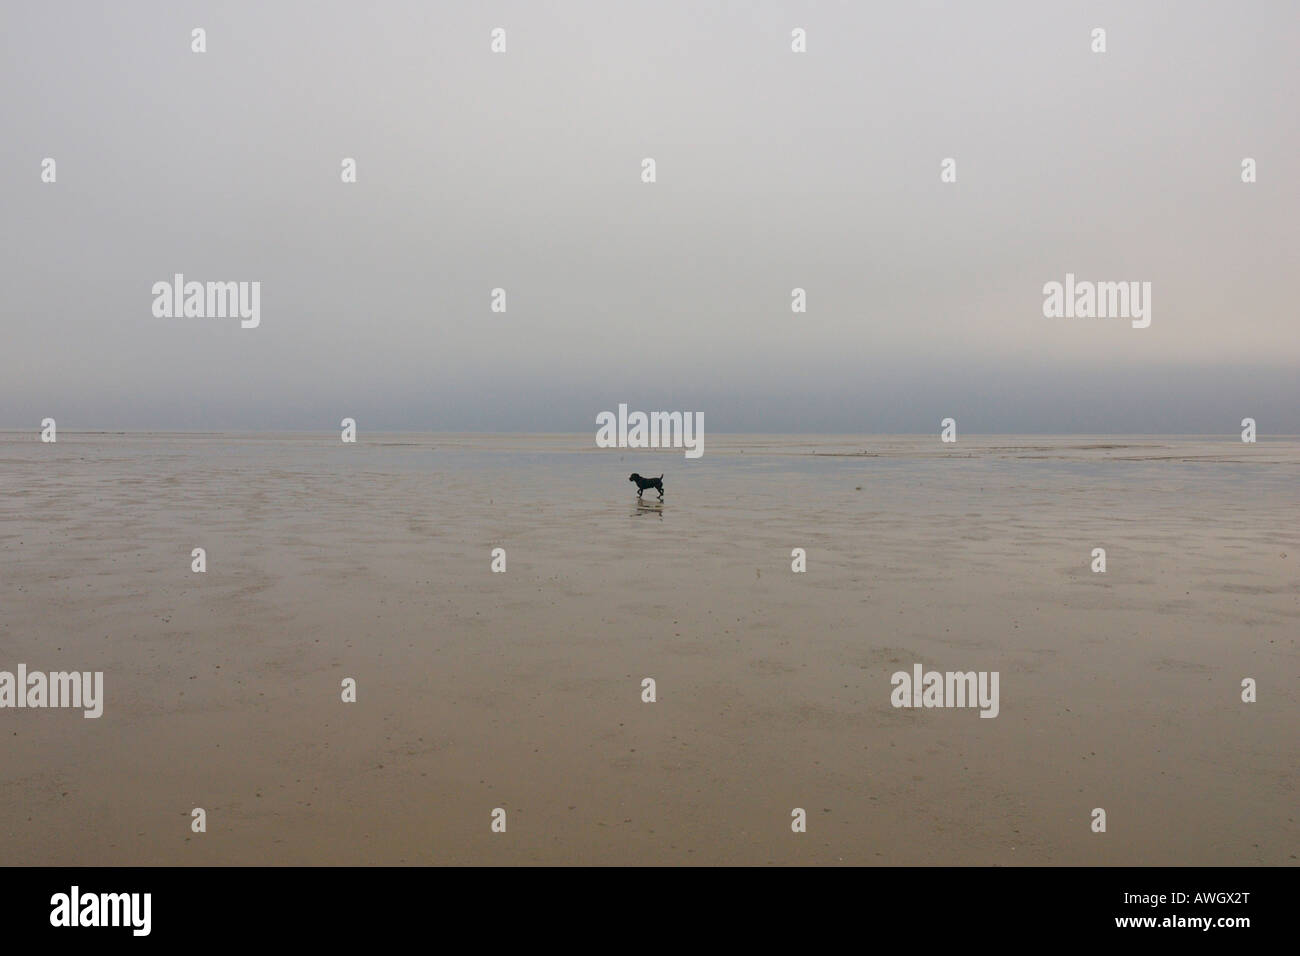 labrador-dog-looking-lost-on-the-sands-of-morecambe-bay-cumbria-england-AWGX2T.jpg